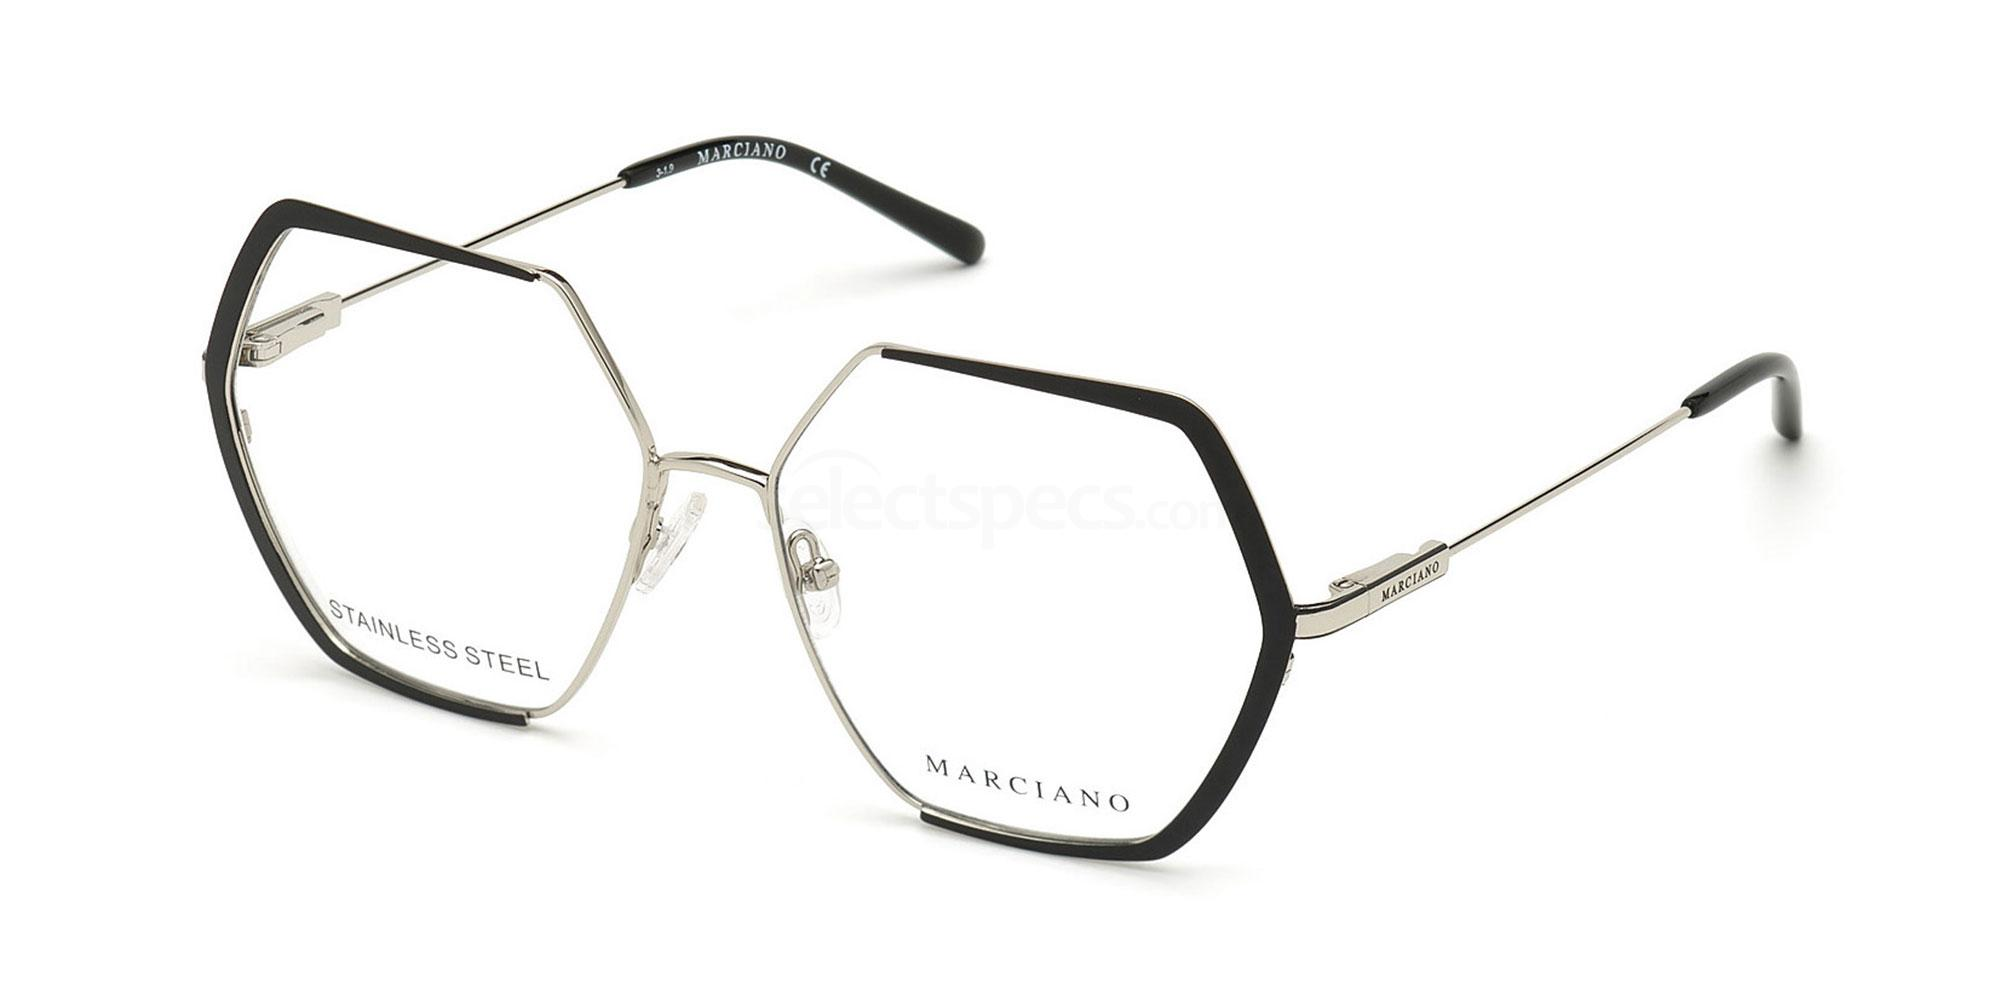 002 GM0349 Glasses, Guess by Marciano